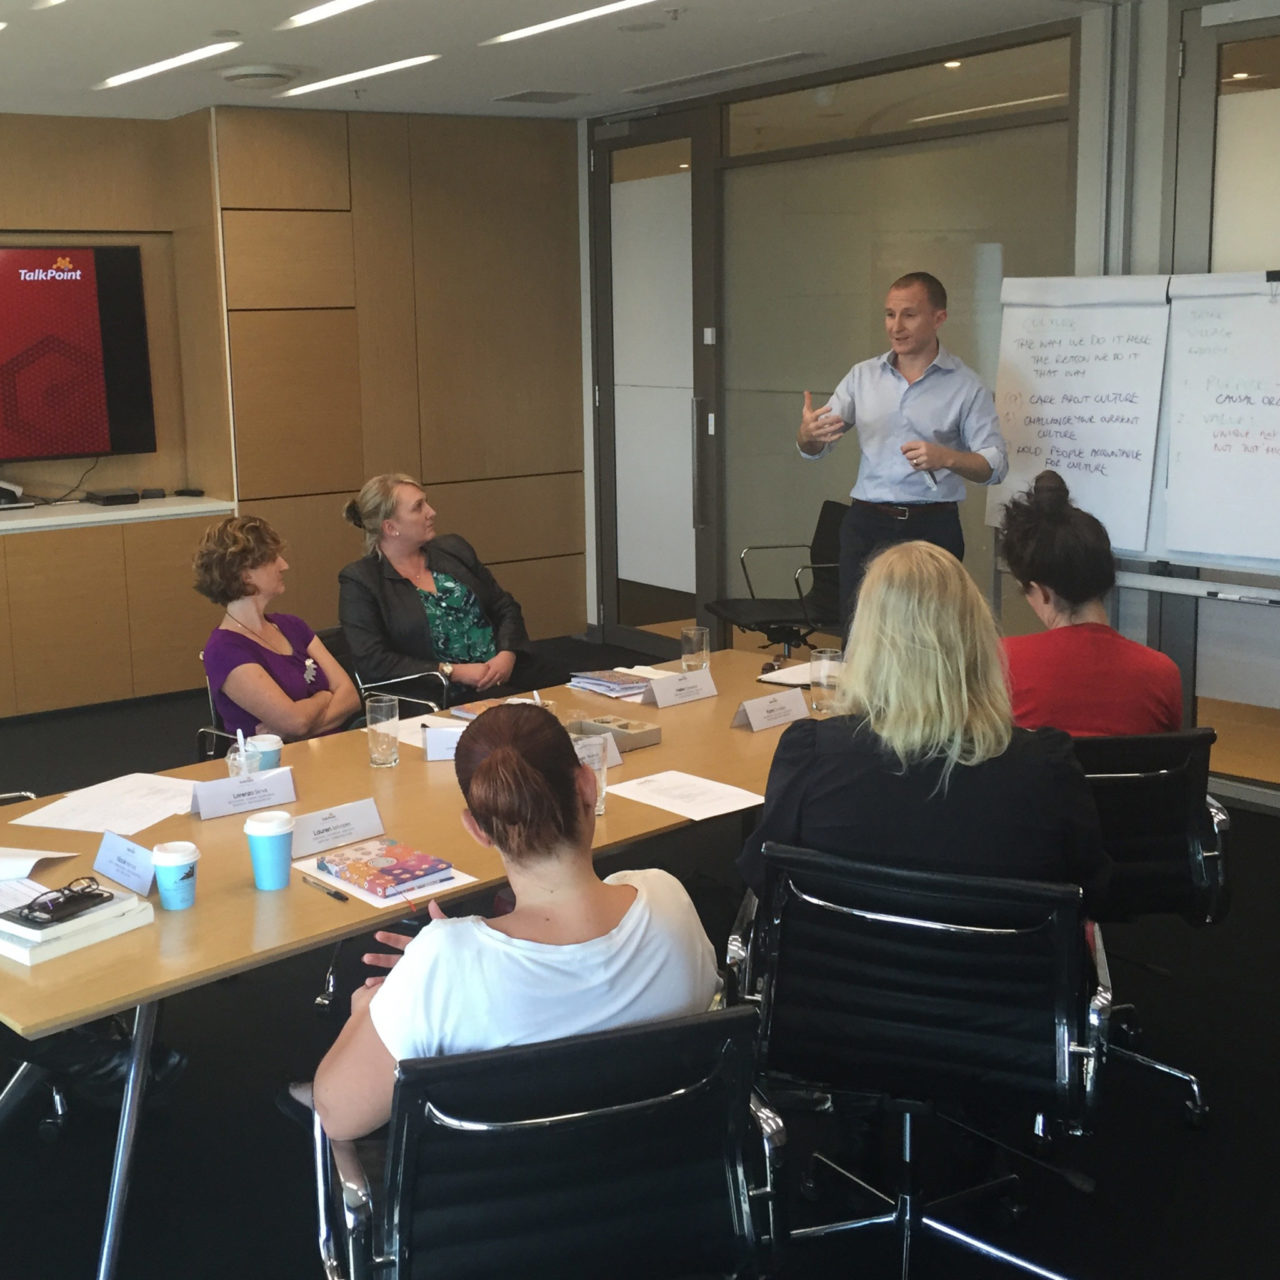 John Colbert holding a Corporate Coaching Workshop - Just one of the solutions Corporate Edge offers for Cultural Alignment